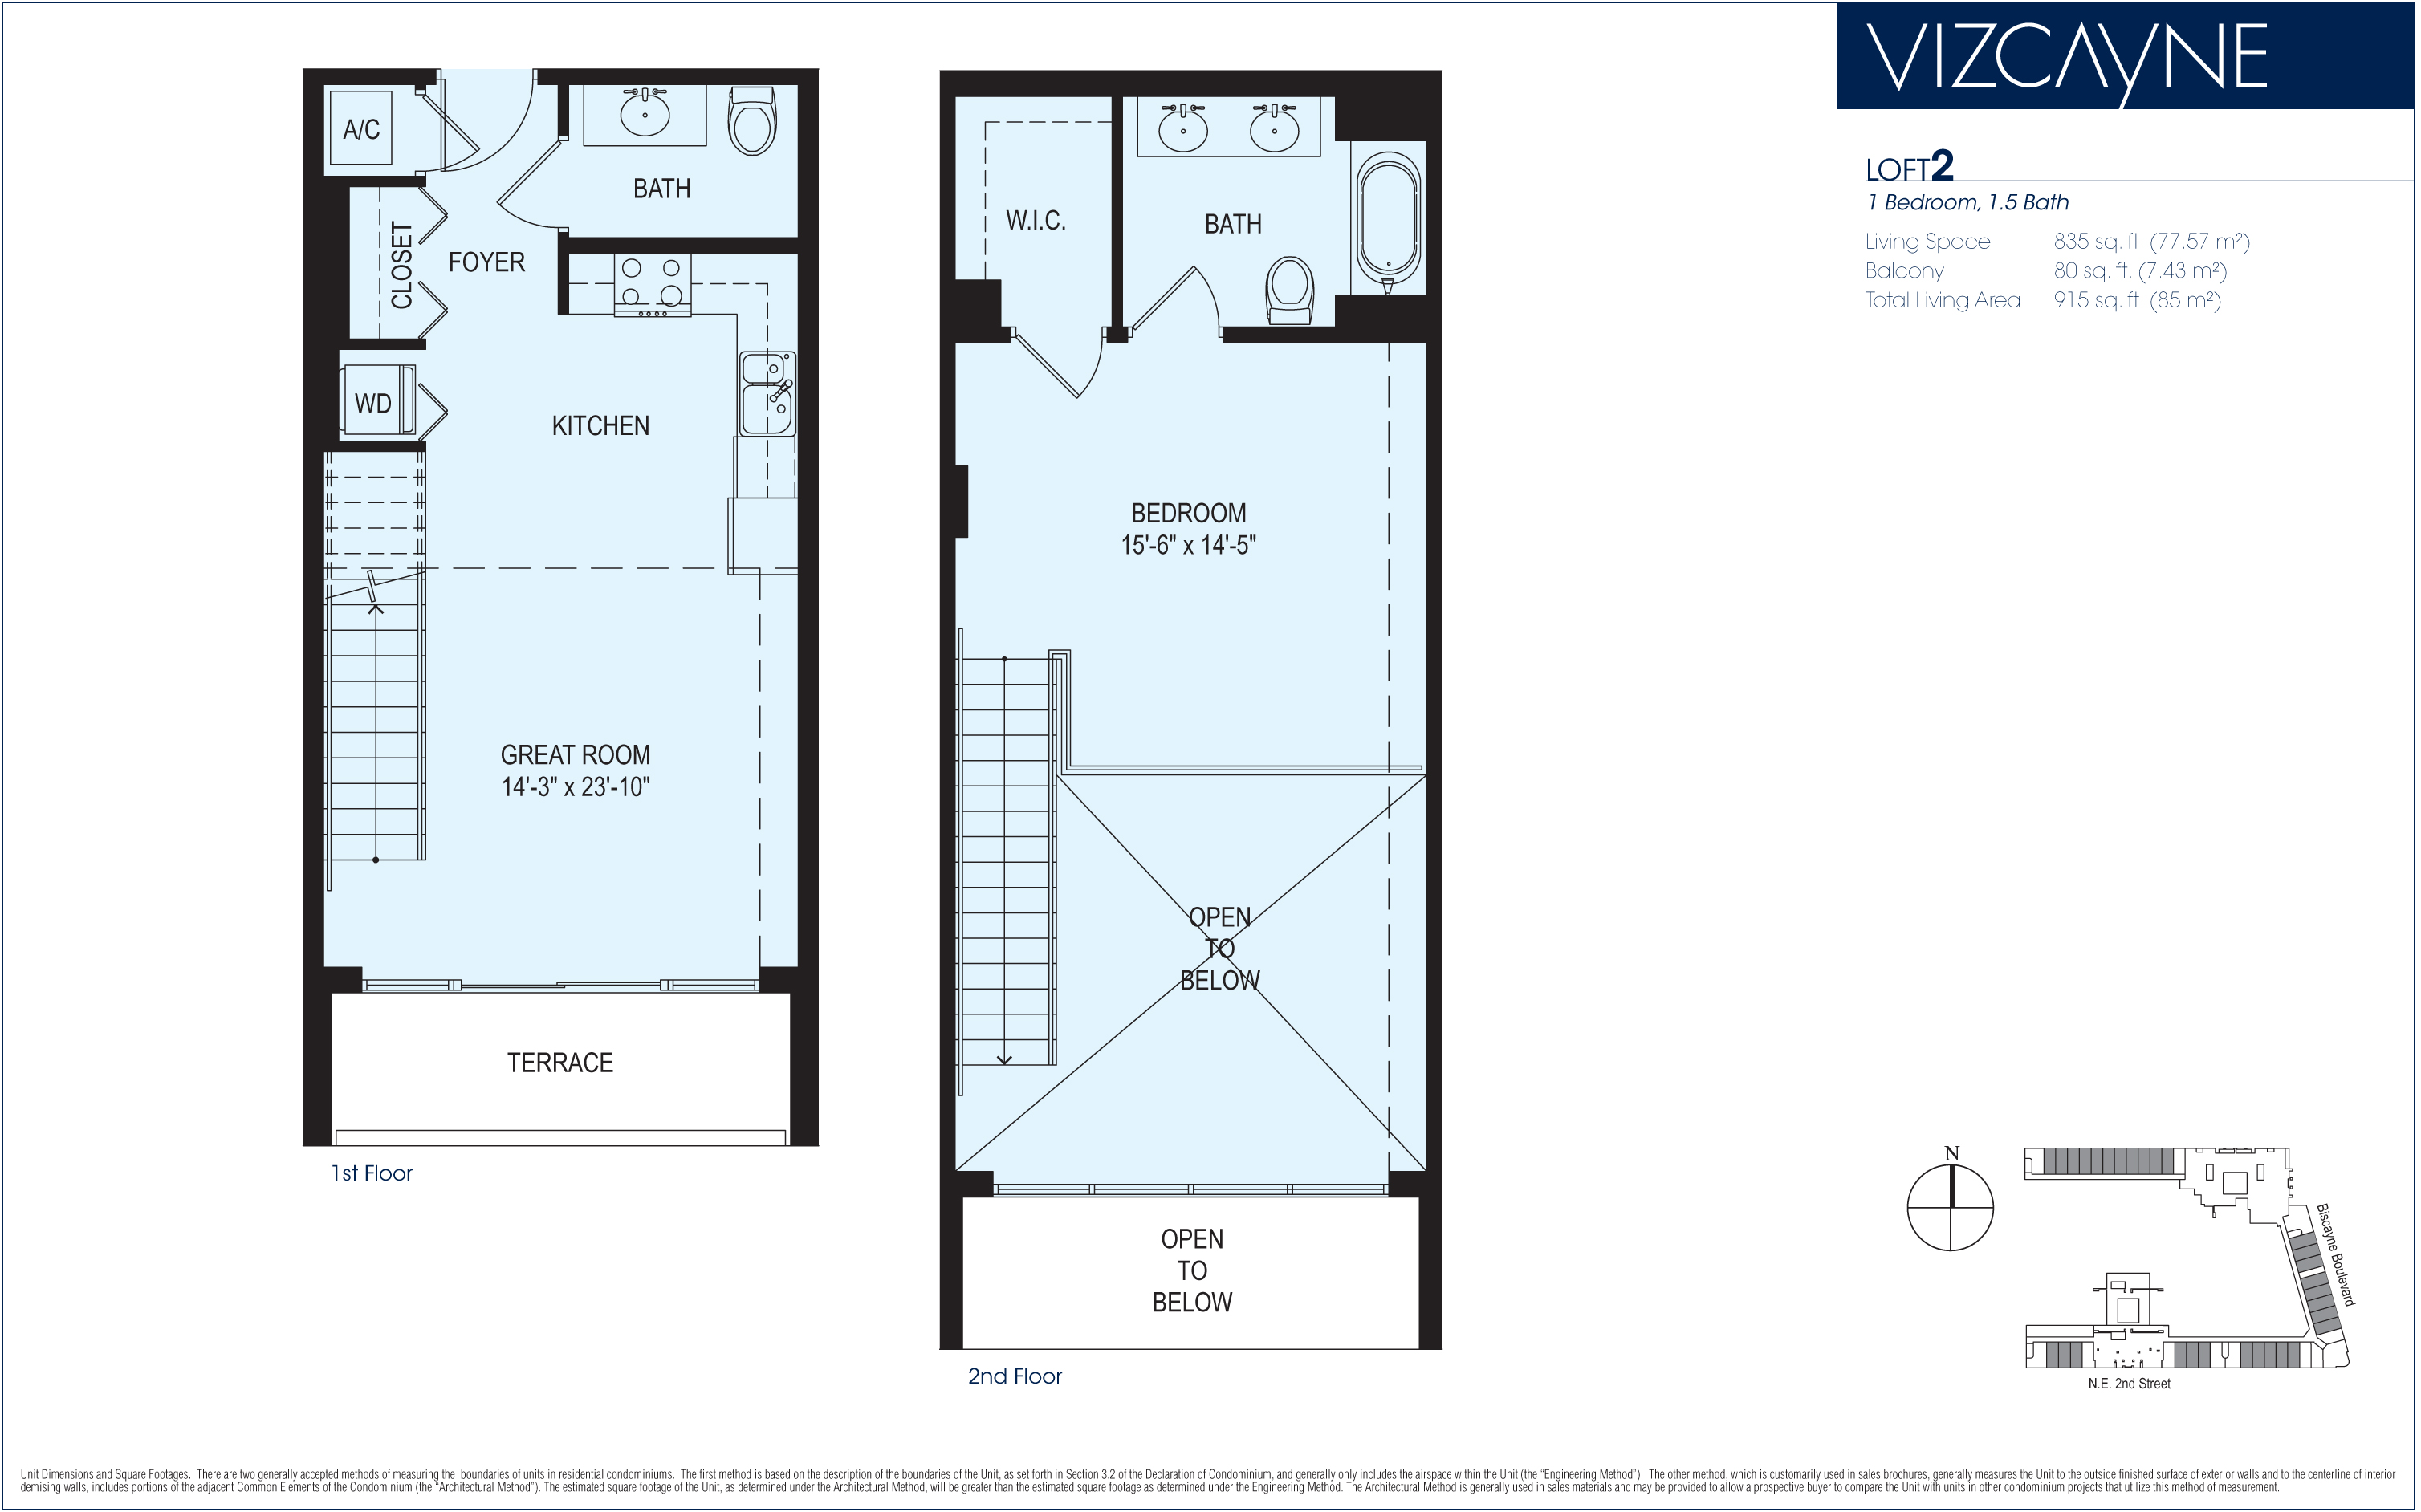 Vizcayne tower floorplans miami for Two story loft floor plans